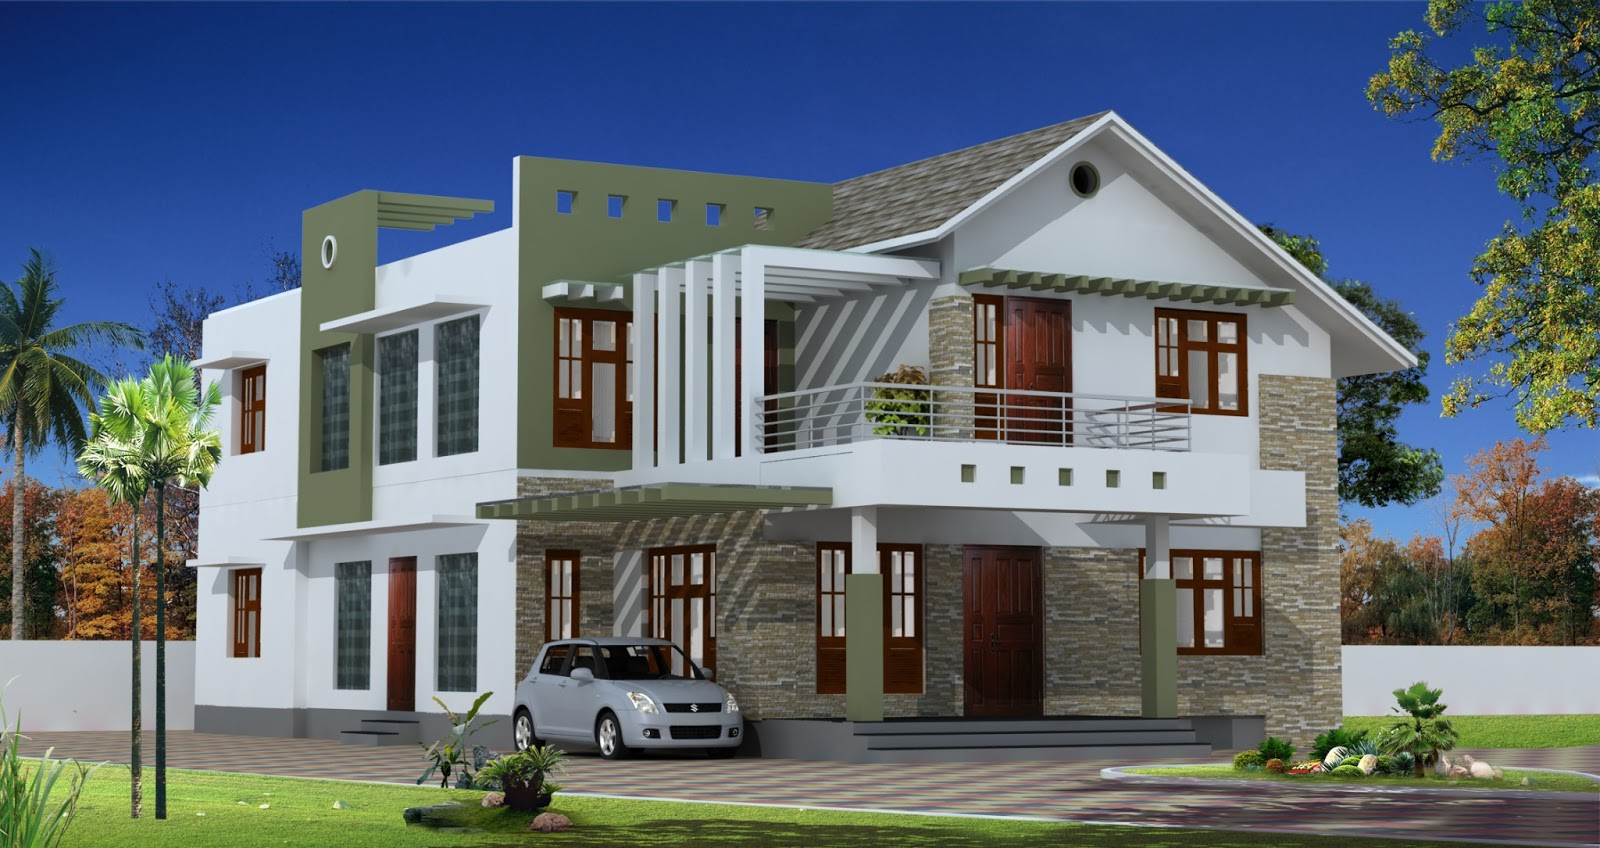 Latest home designs original home designs for House building ideas